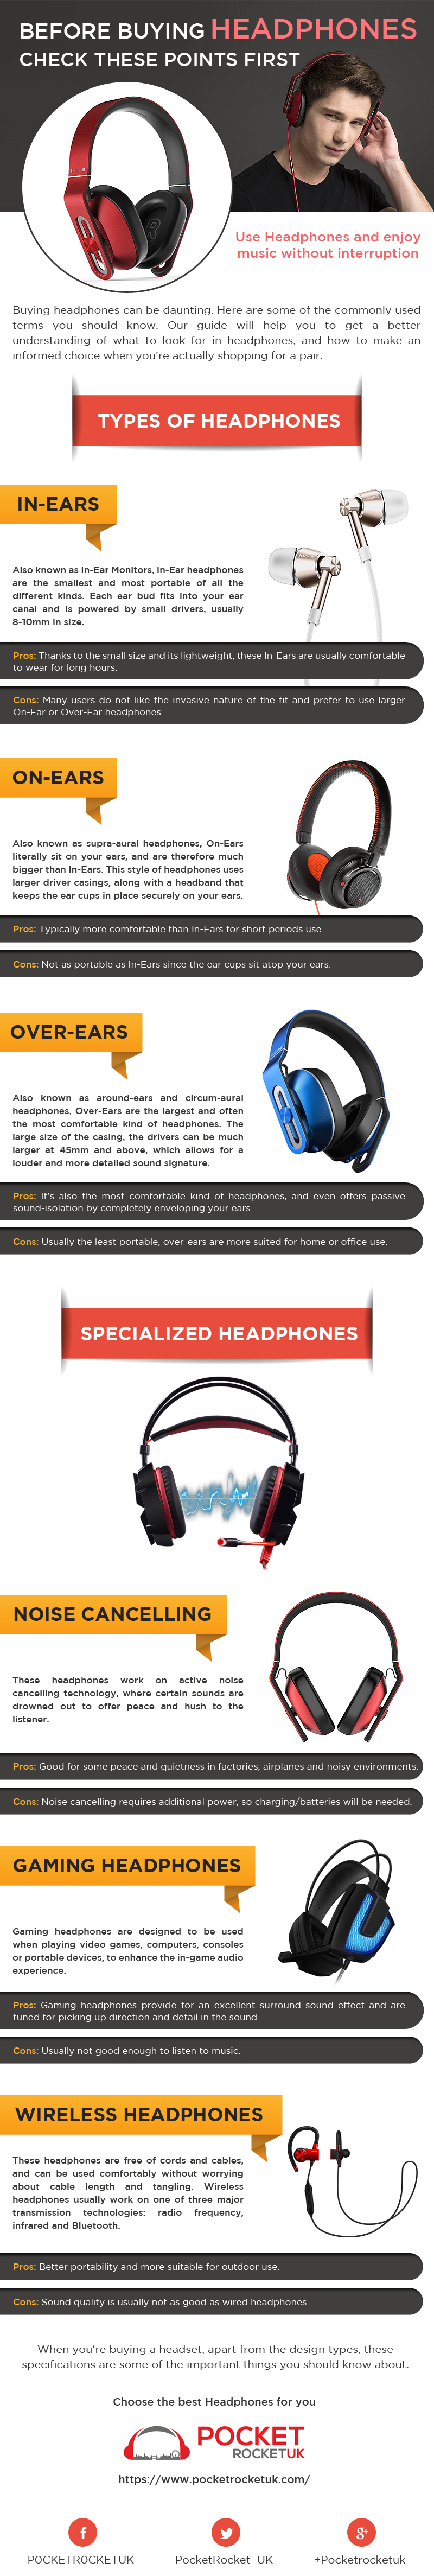 Before Buying Headphones Check These Points First